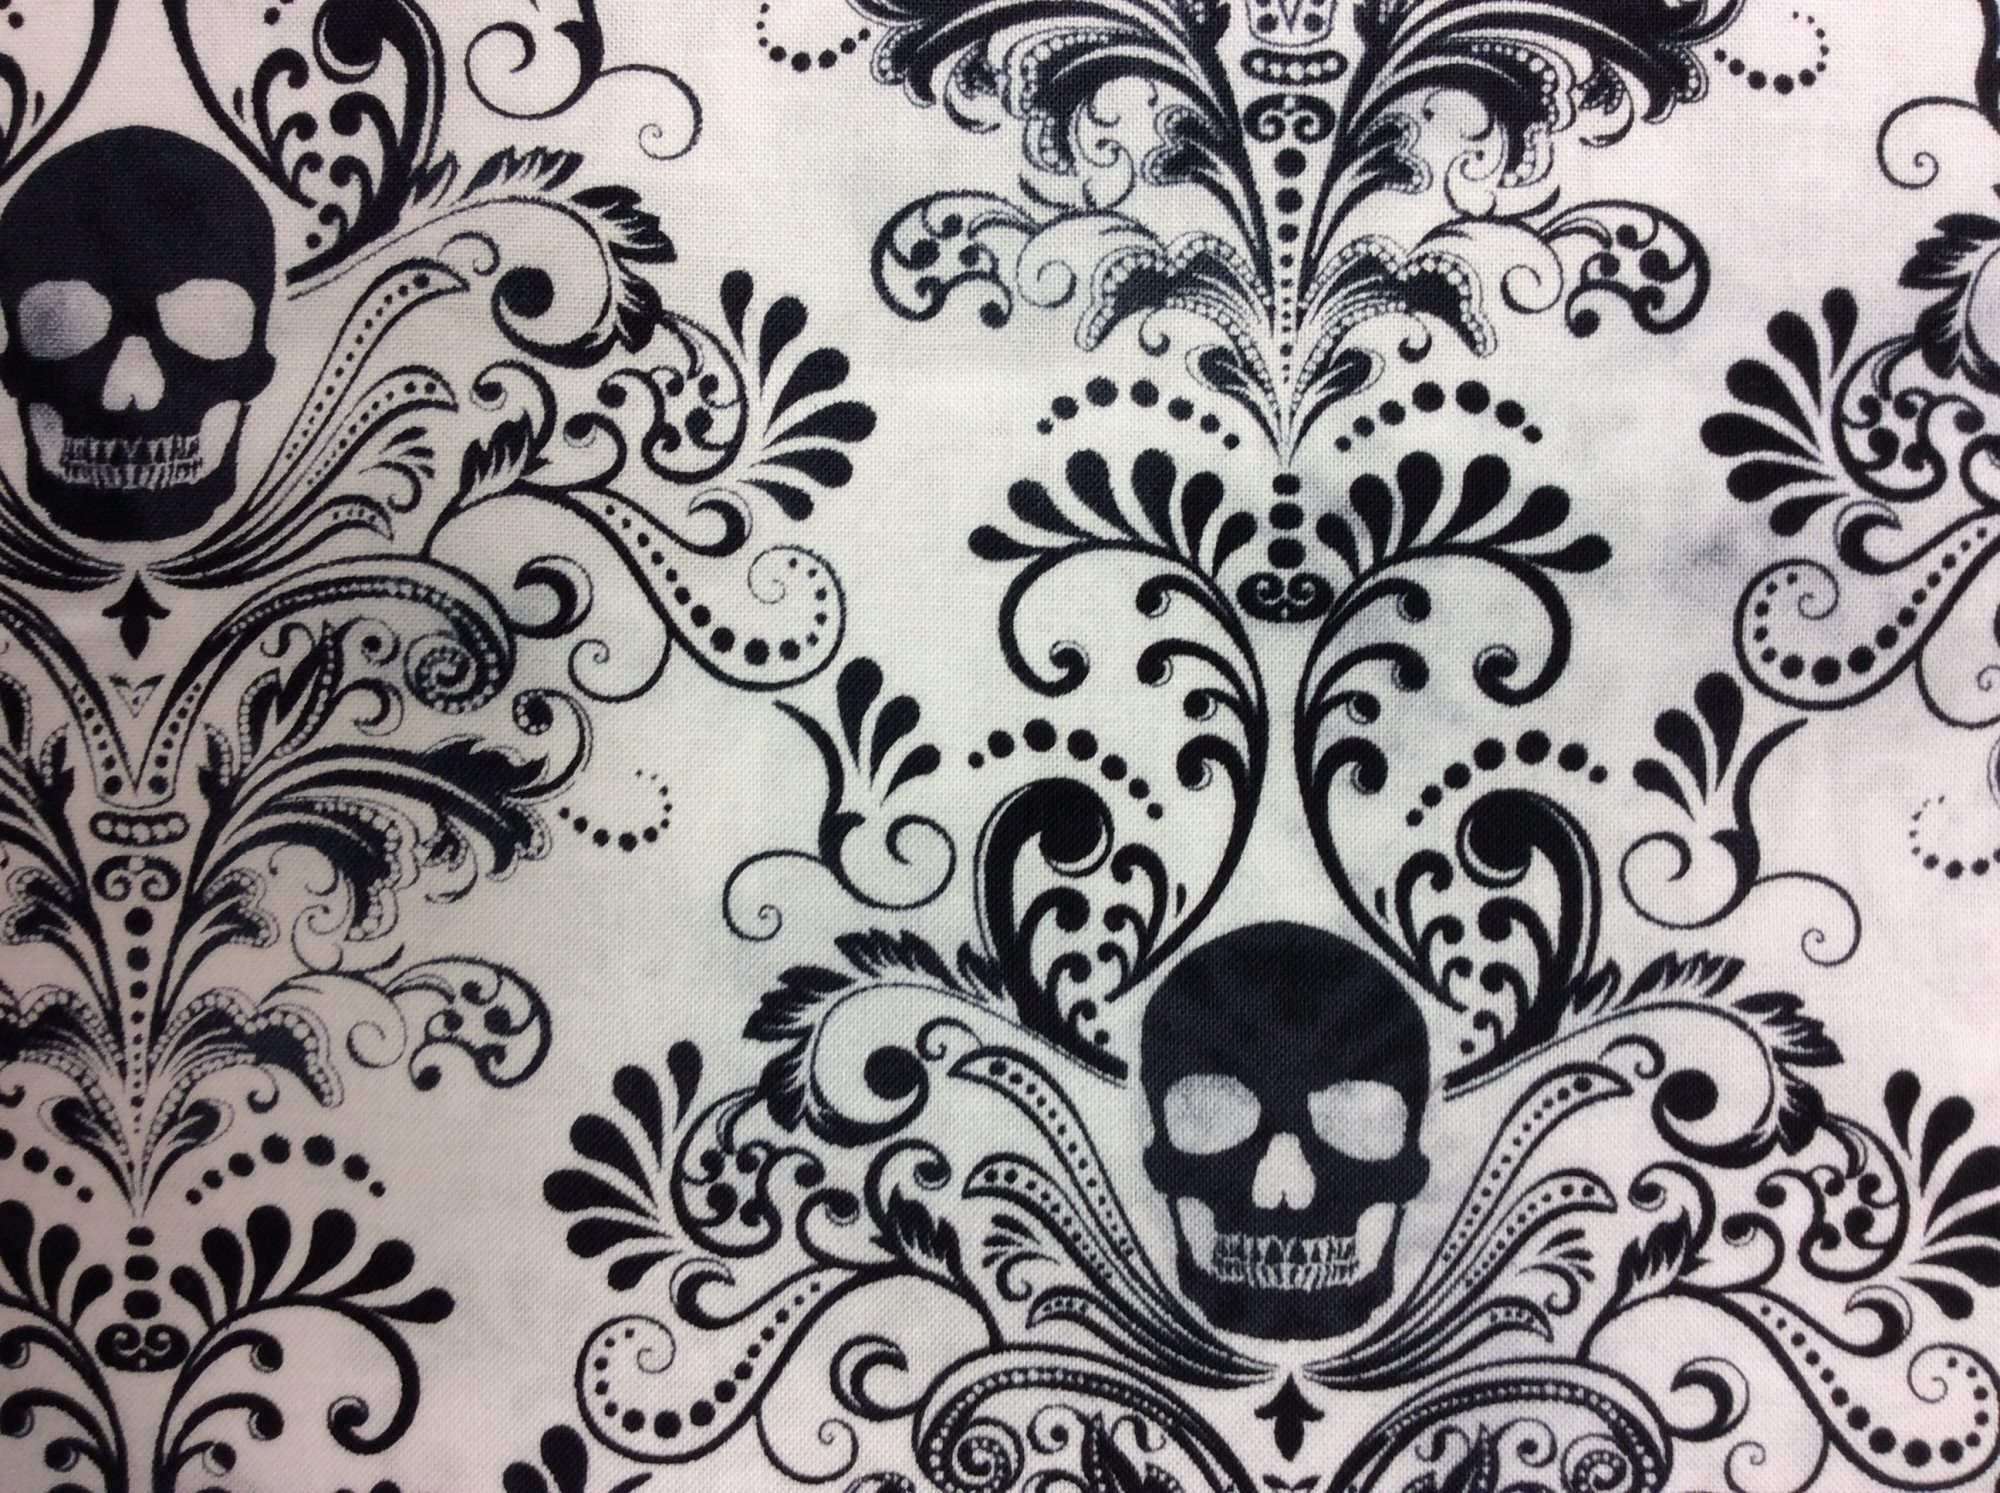 Goth Horror Skull Damask Punk Scarey Halloween Tattoo Dead Cotton ... : tattoo quilt fabric - Adamdwight.com